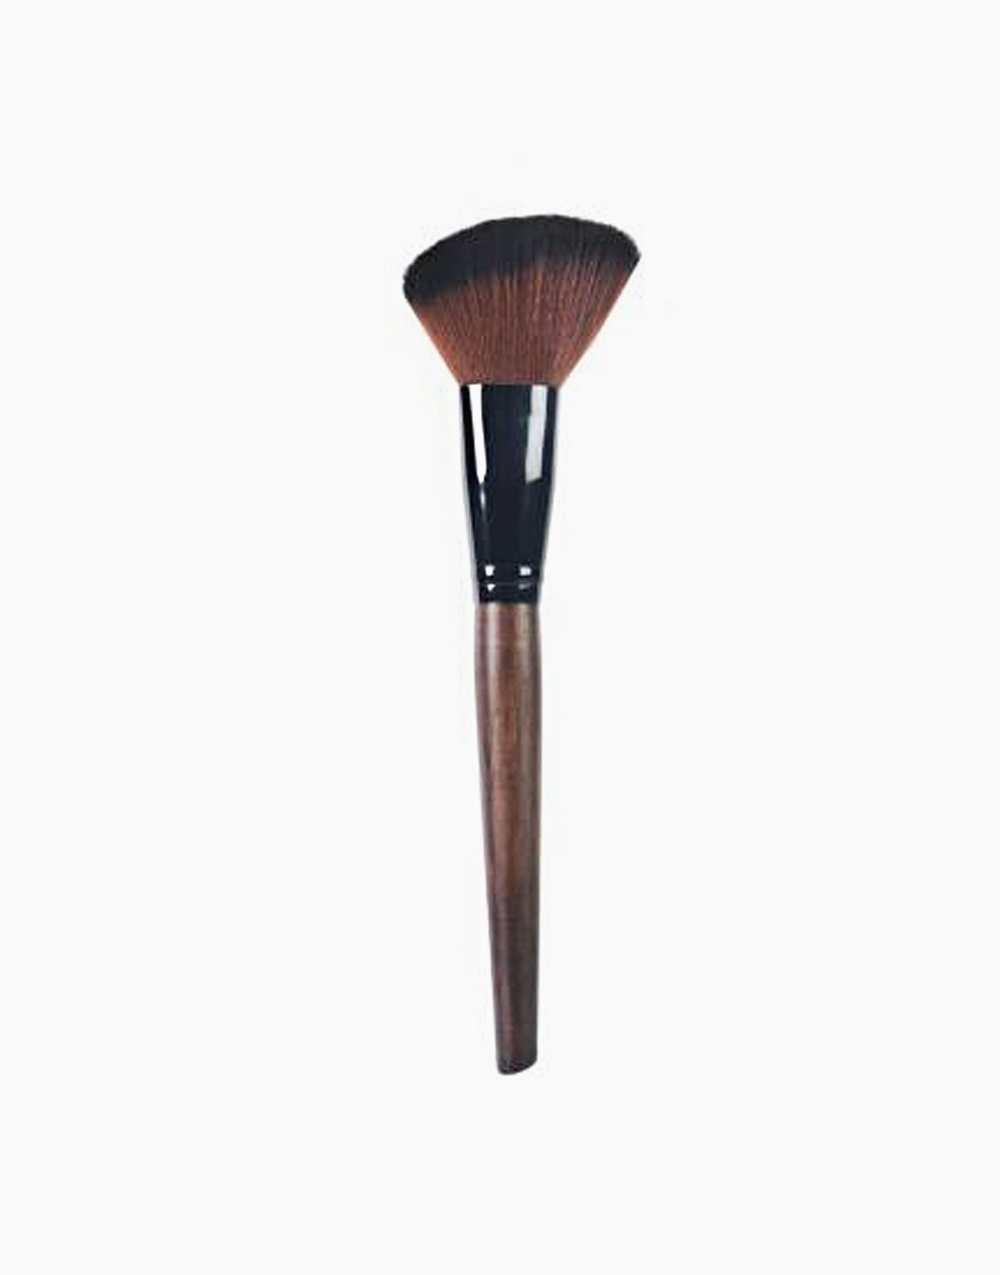 Large Angle Brush for Powder by Shawill Cosmetics